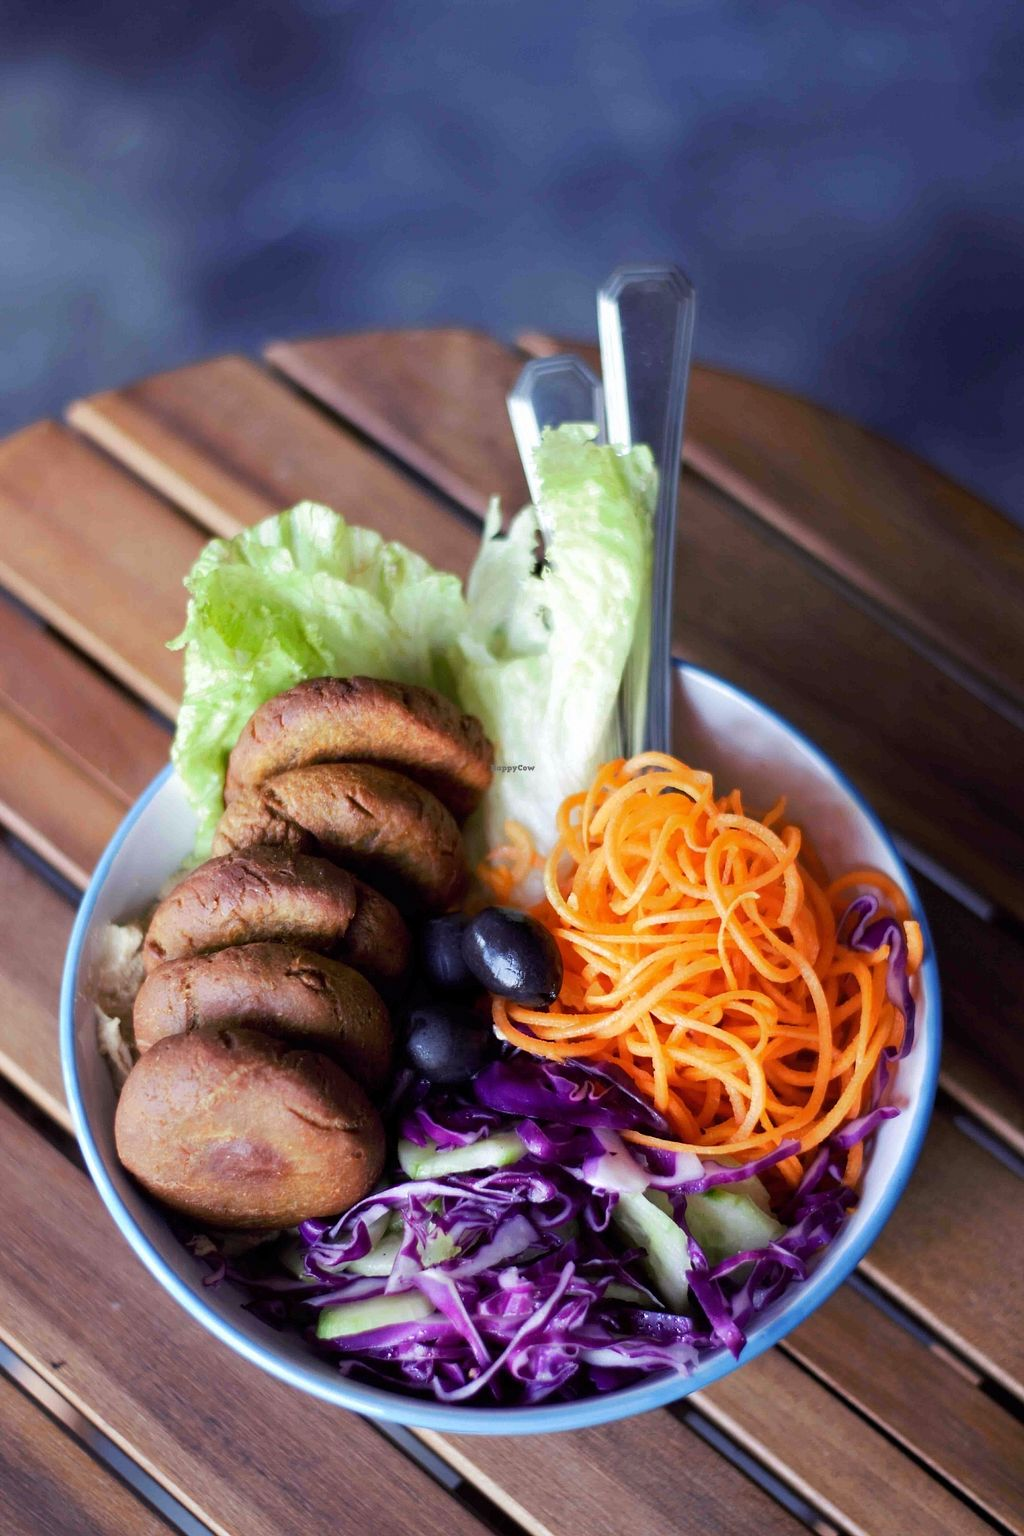 """Photo of Eatwithfingers Cafe  by <a href=""""/members/profile/EatwithfingersCaf%C3%A9"""">EatwithfingersCafé</a> <br/>Falafel Buddha Bowl <br/> August 13, 2017  - <a href='/contact/abuse/image/98498/292189'>Report</a>"""